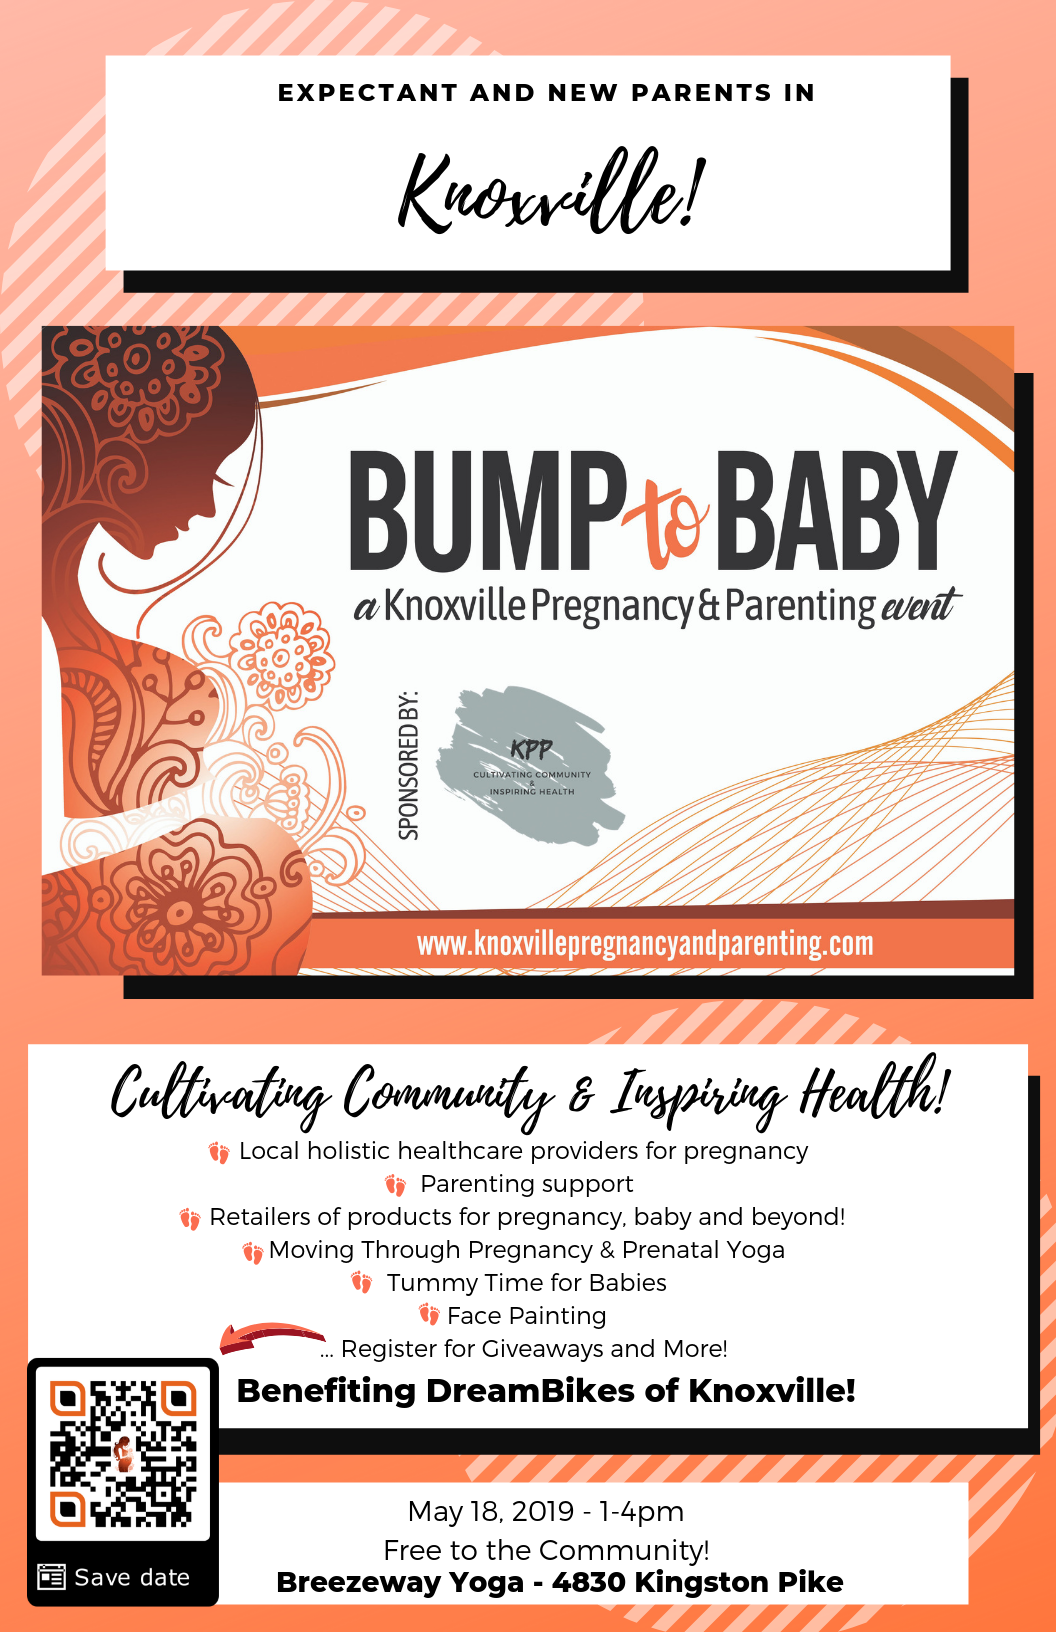 From Bump to Baby: A Knoxville Pregnancy and Parenting Event @ Breezeway Yoga Studio | Knoxville | Tennessee | United States